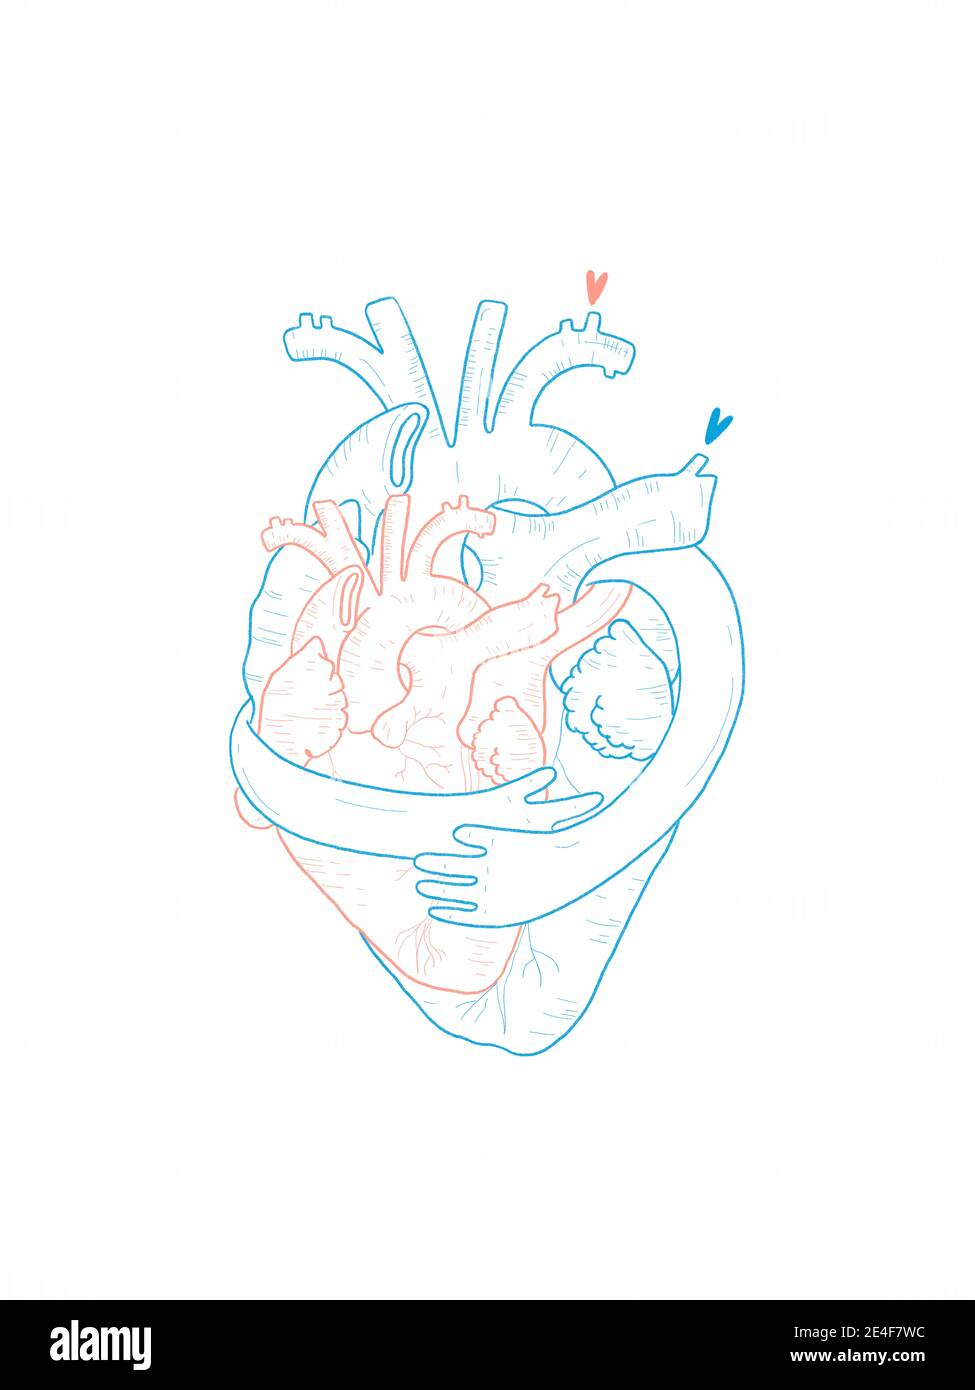 Hand draw Illustration of two hearts hugging each other Stock Photo